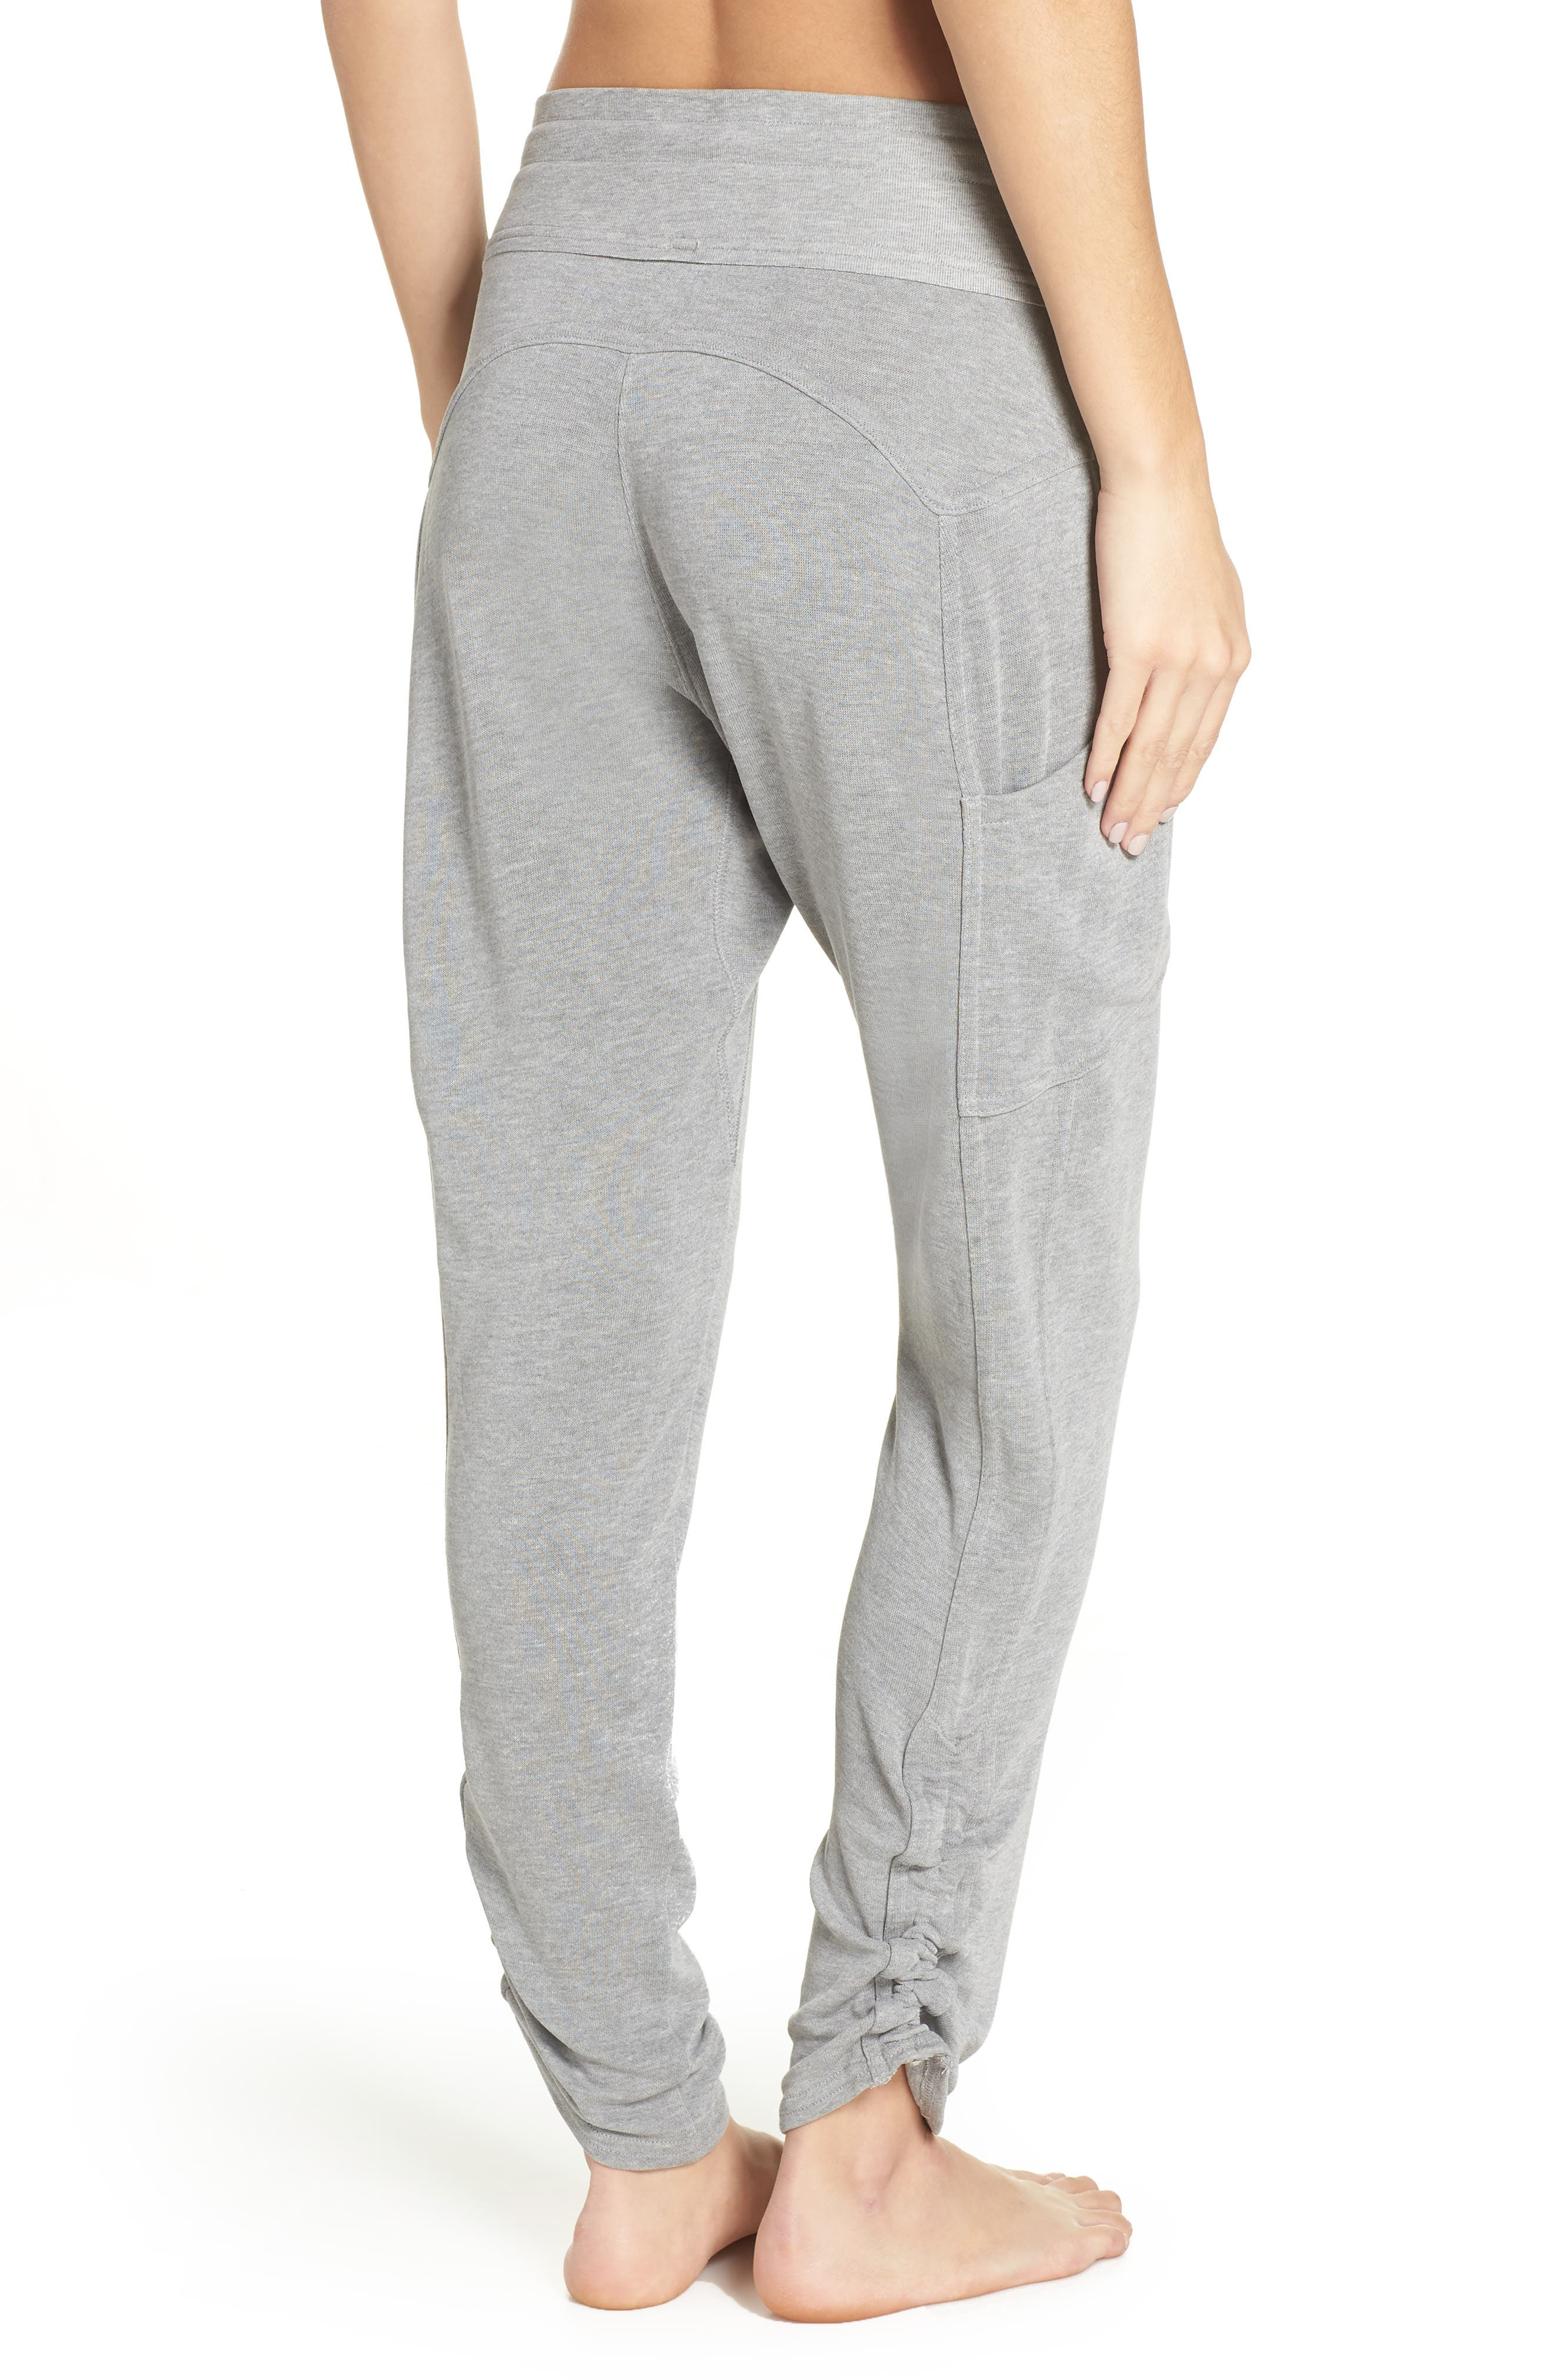 Free People FP Movement Ready Go Jogger Pants,                             Alternate thumbnail 2, color,                             GREY COMBO